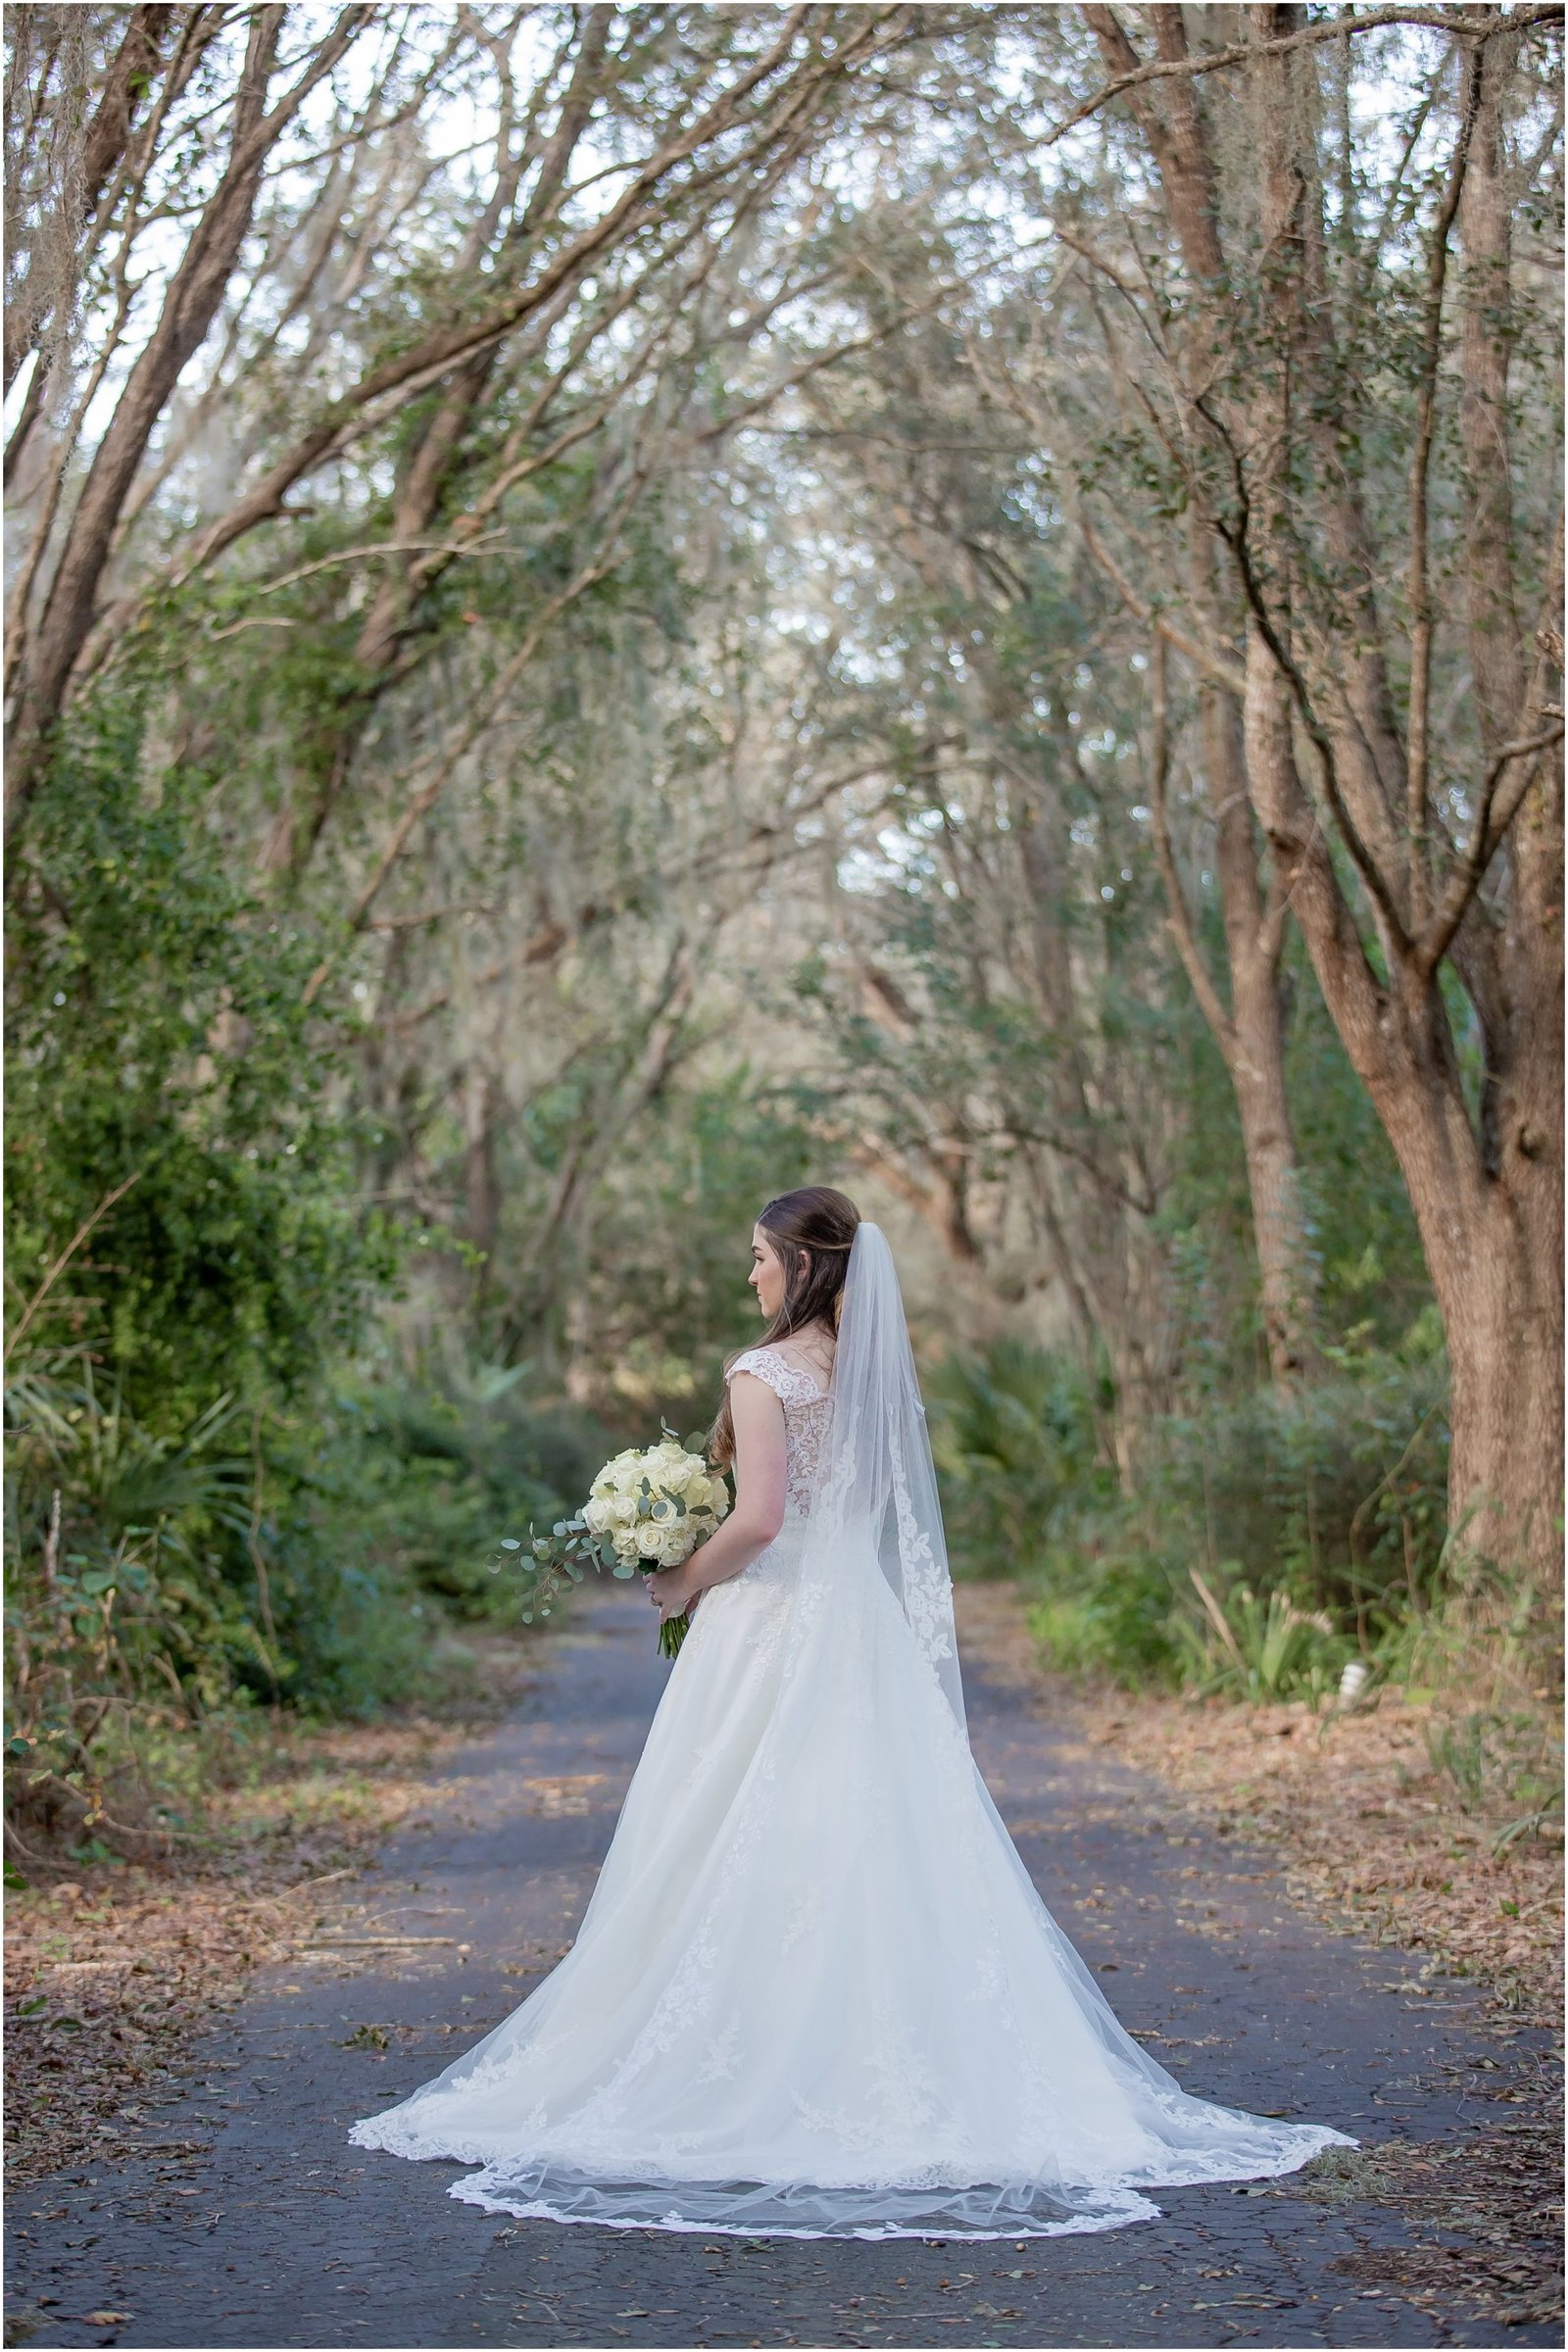 Bridal Portrait at The Barn at Chapel Creek in Venice, Florida